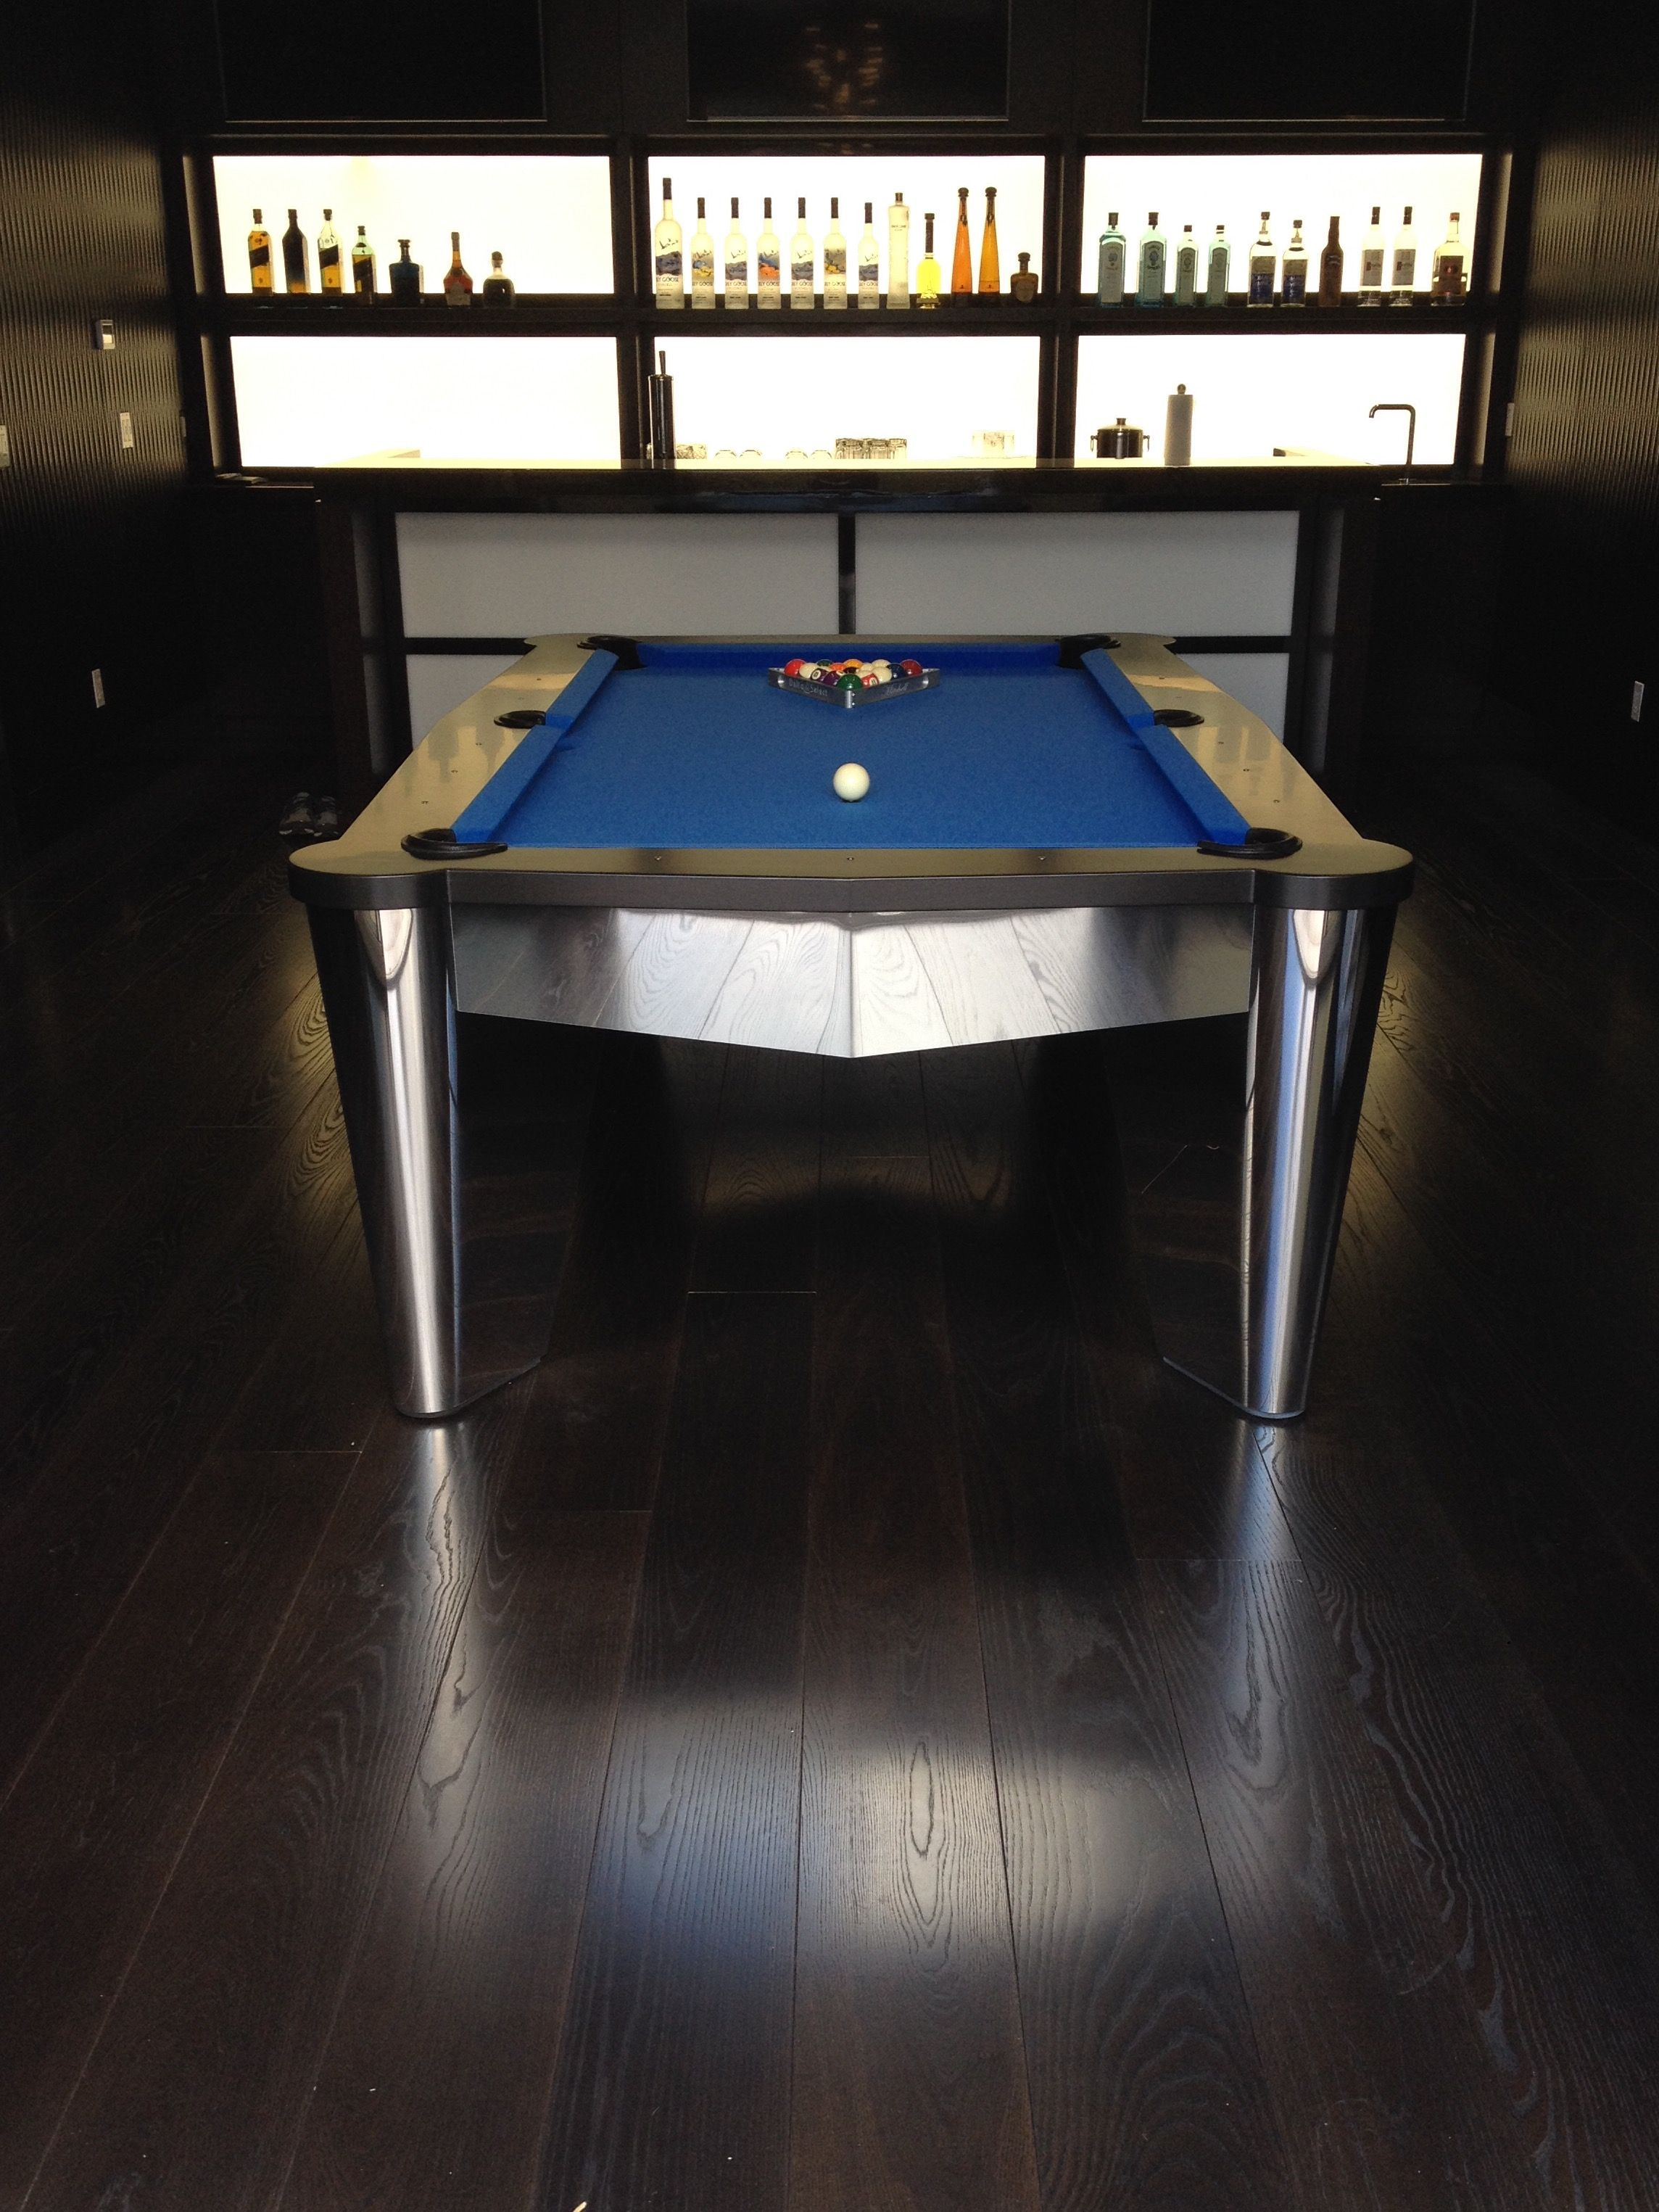 Mitchell Pool Tables Chrome Pool Tables Metal Pool Tables Modern - Chrome pool table